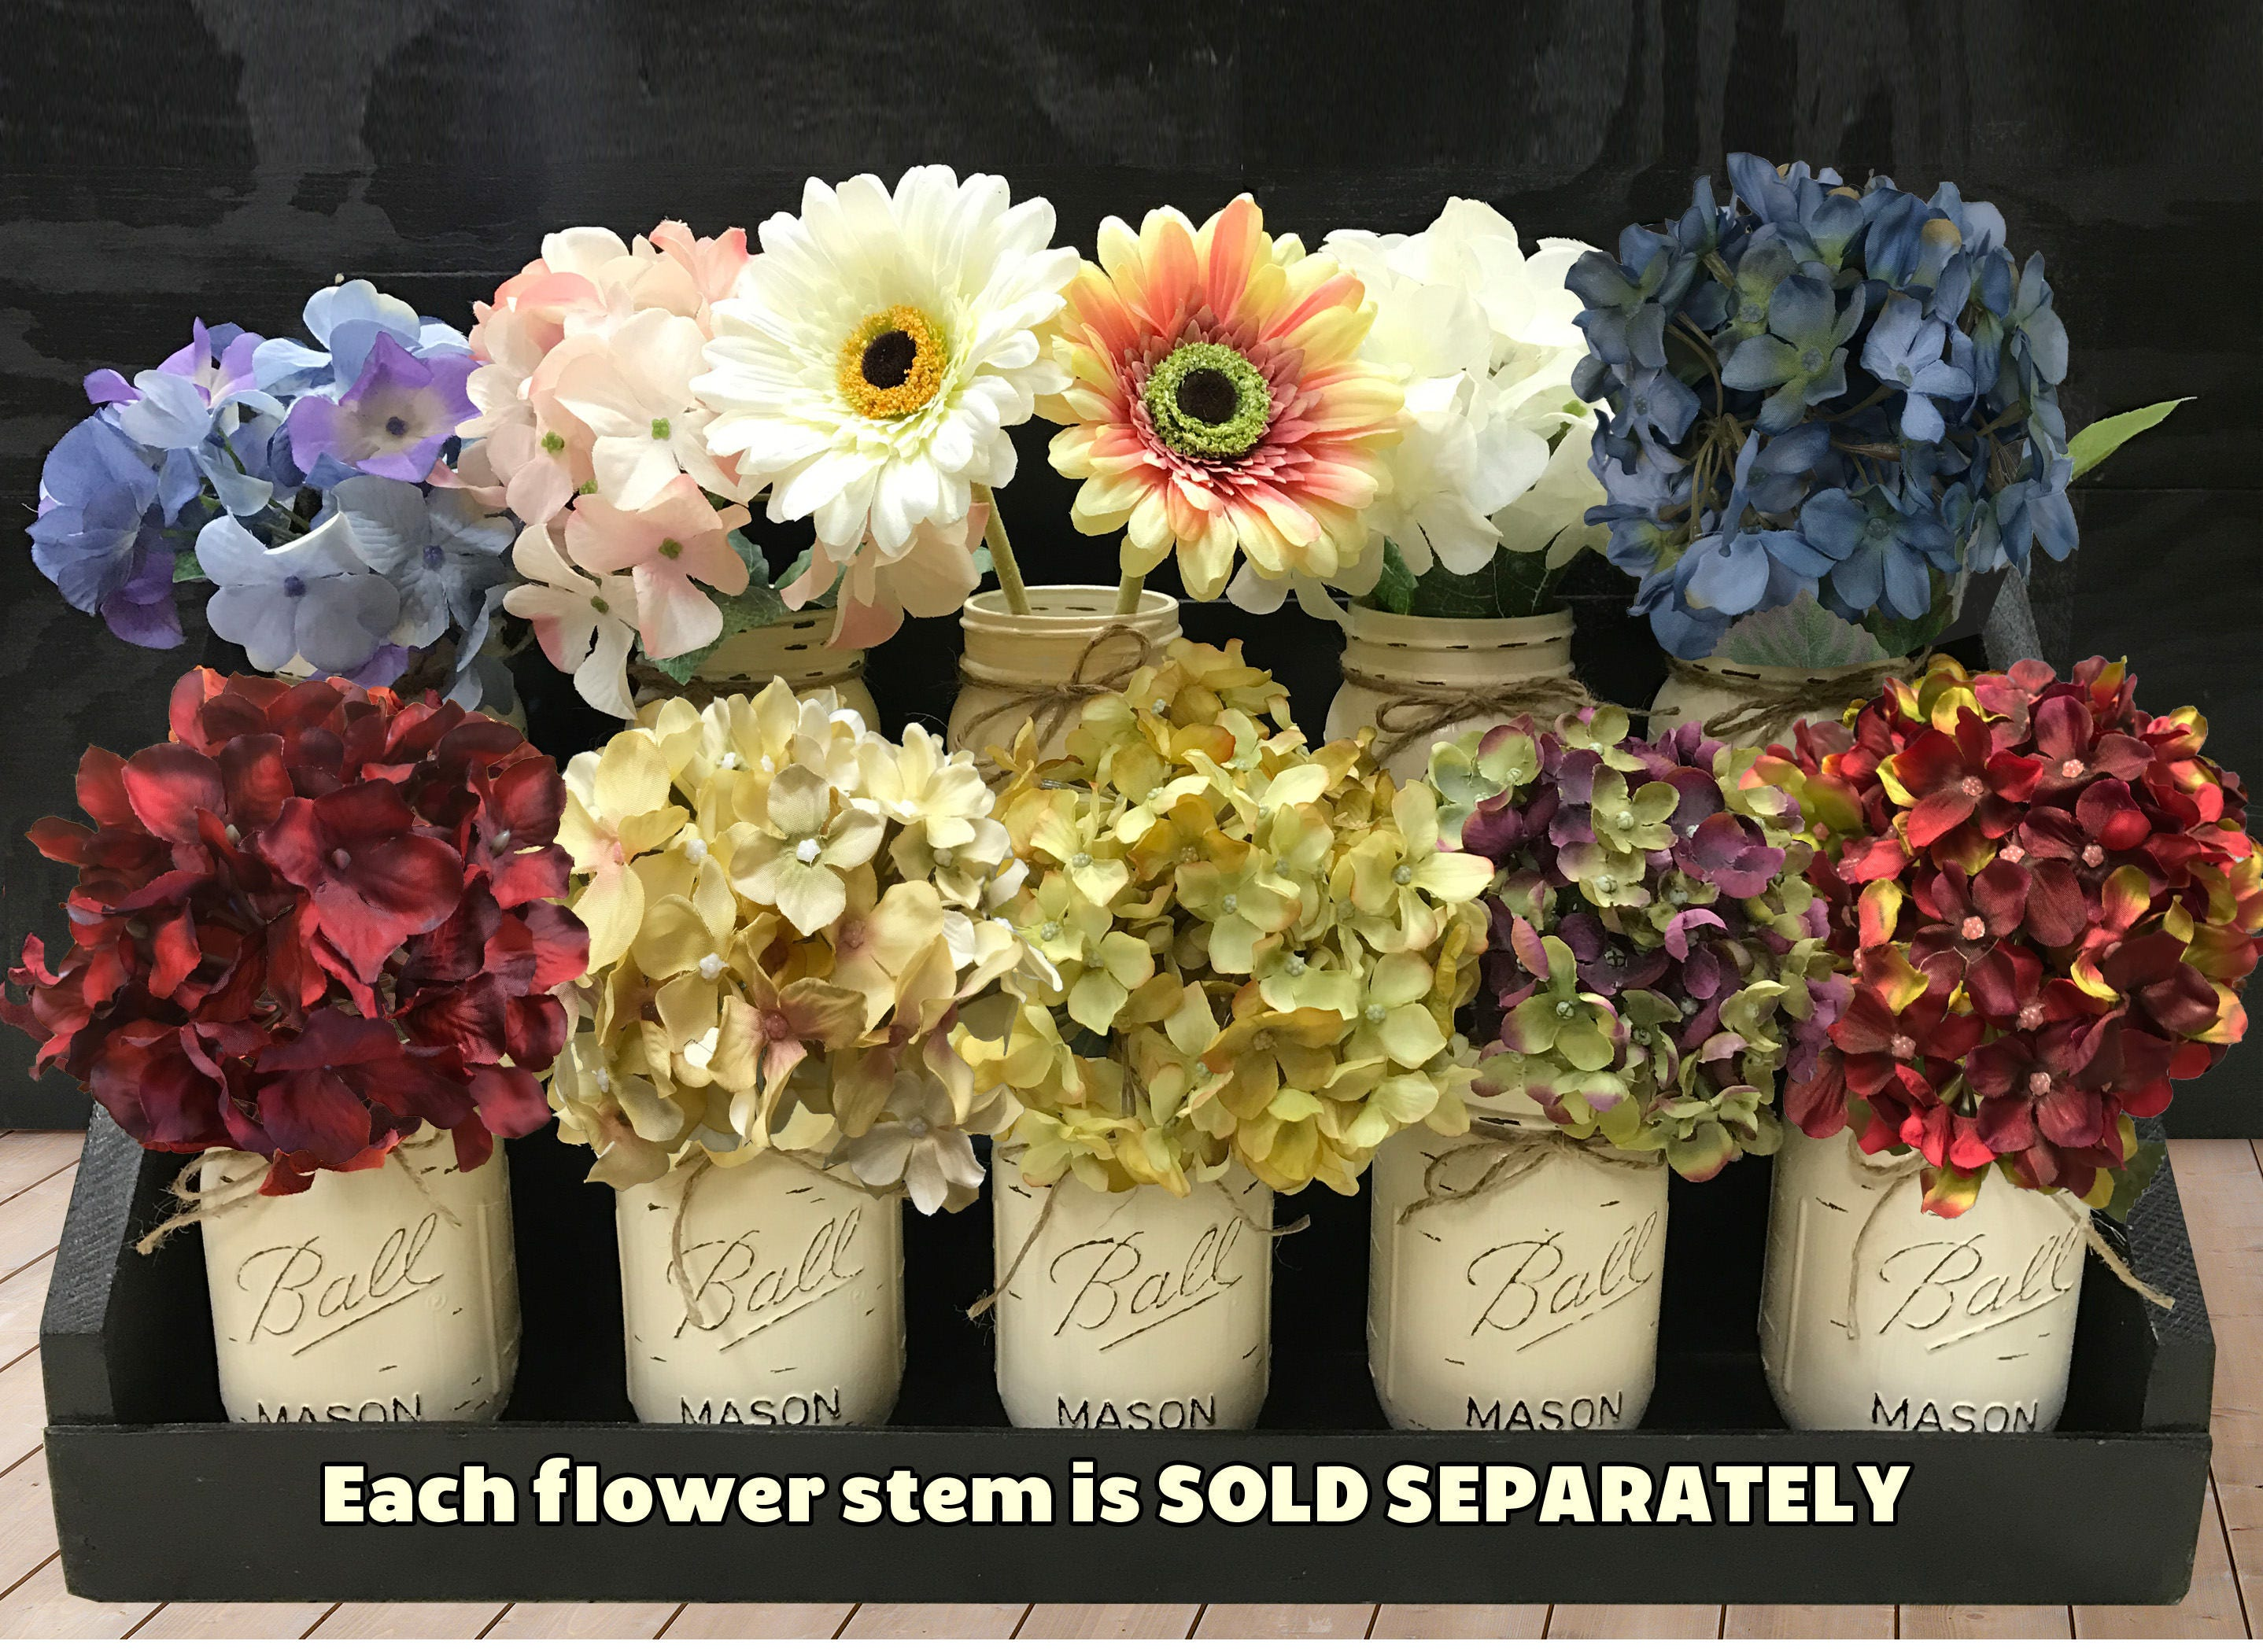 Flower stem hydrangea or daisy accessory for centerpiece table